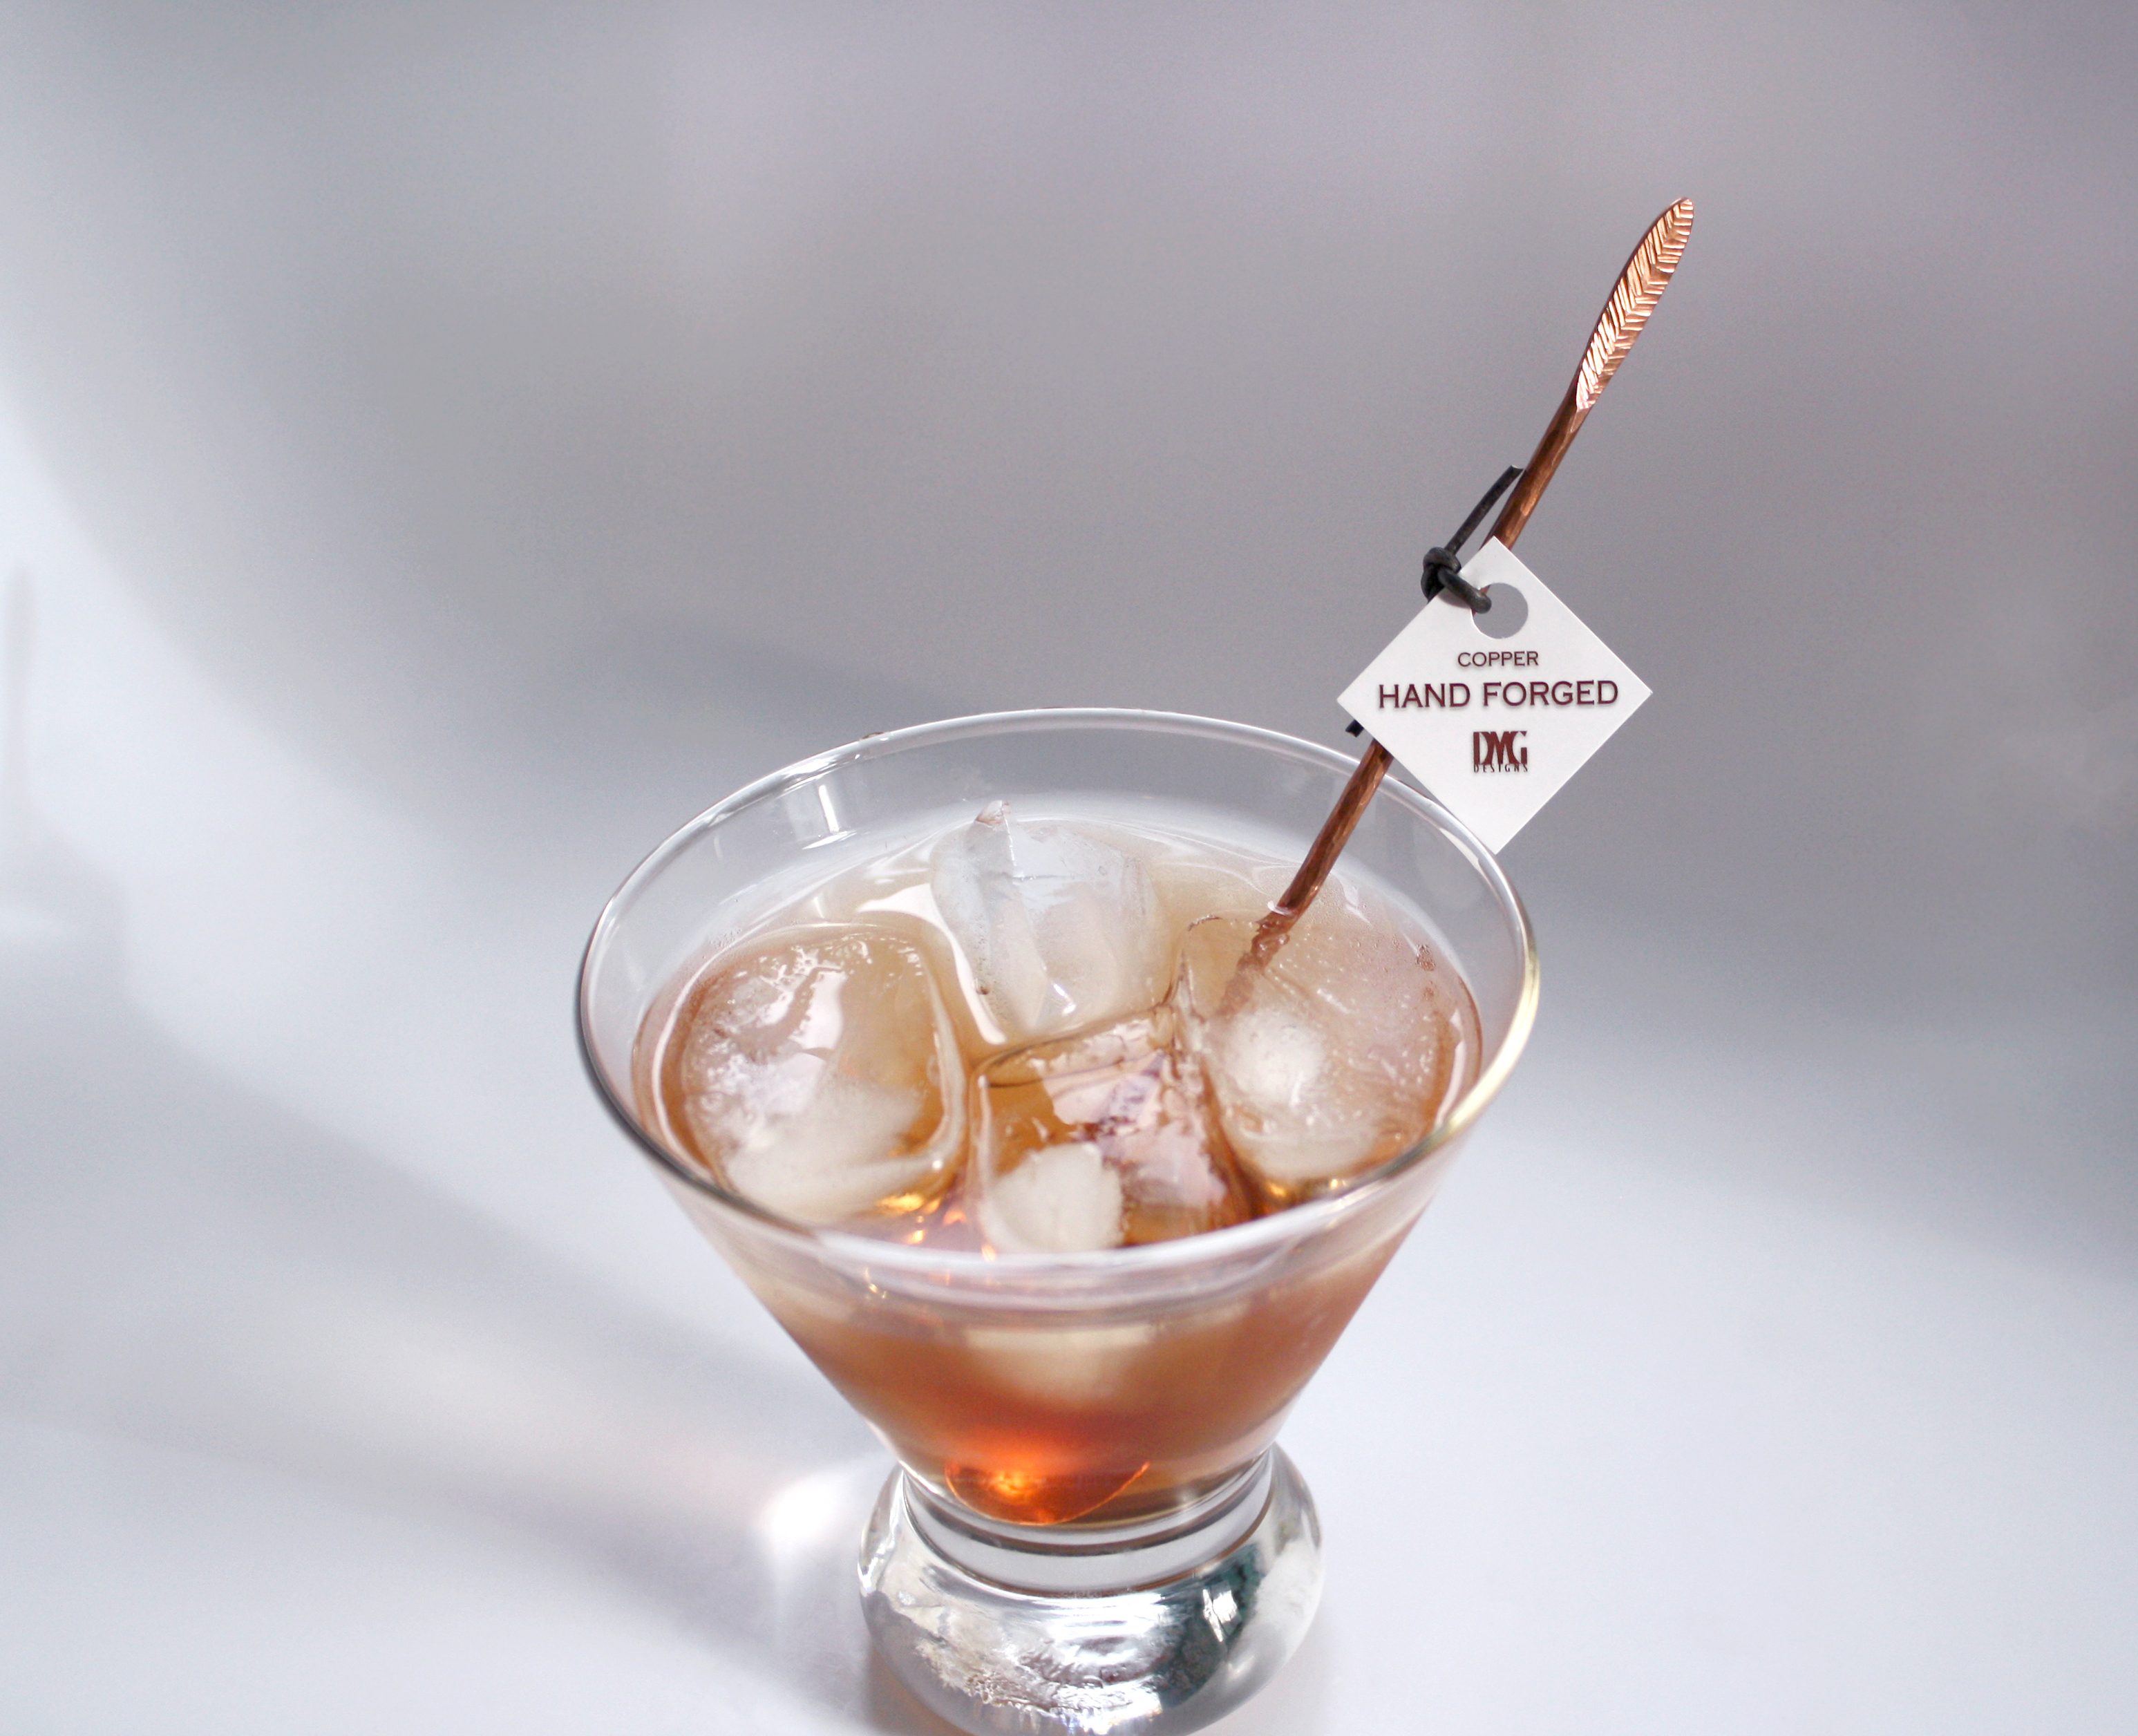 Stirrer with tag in drink